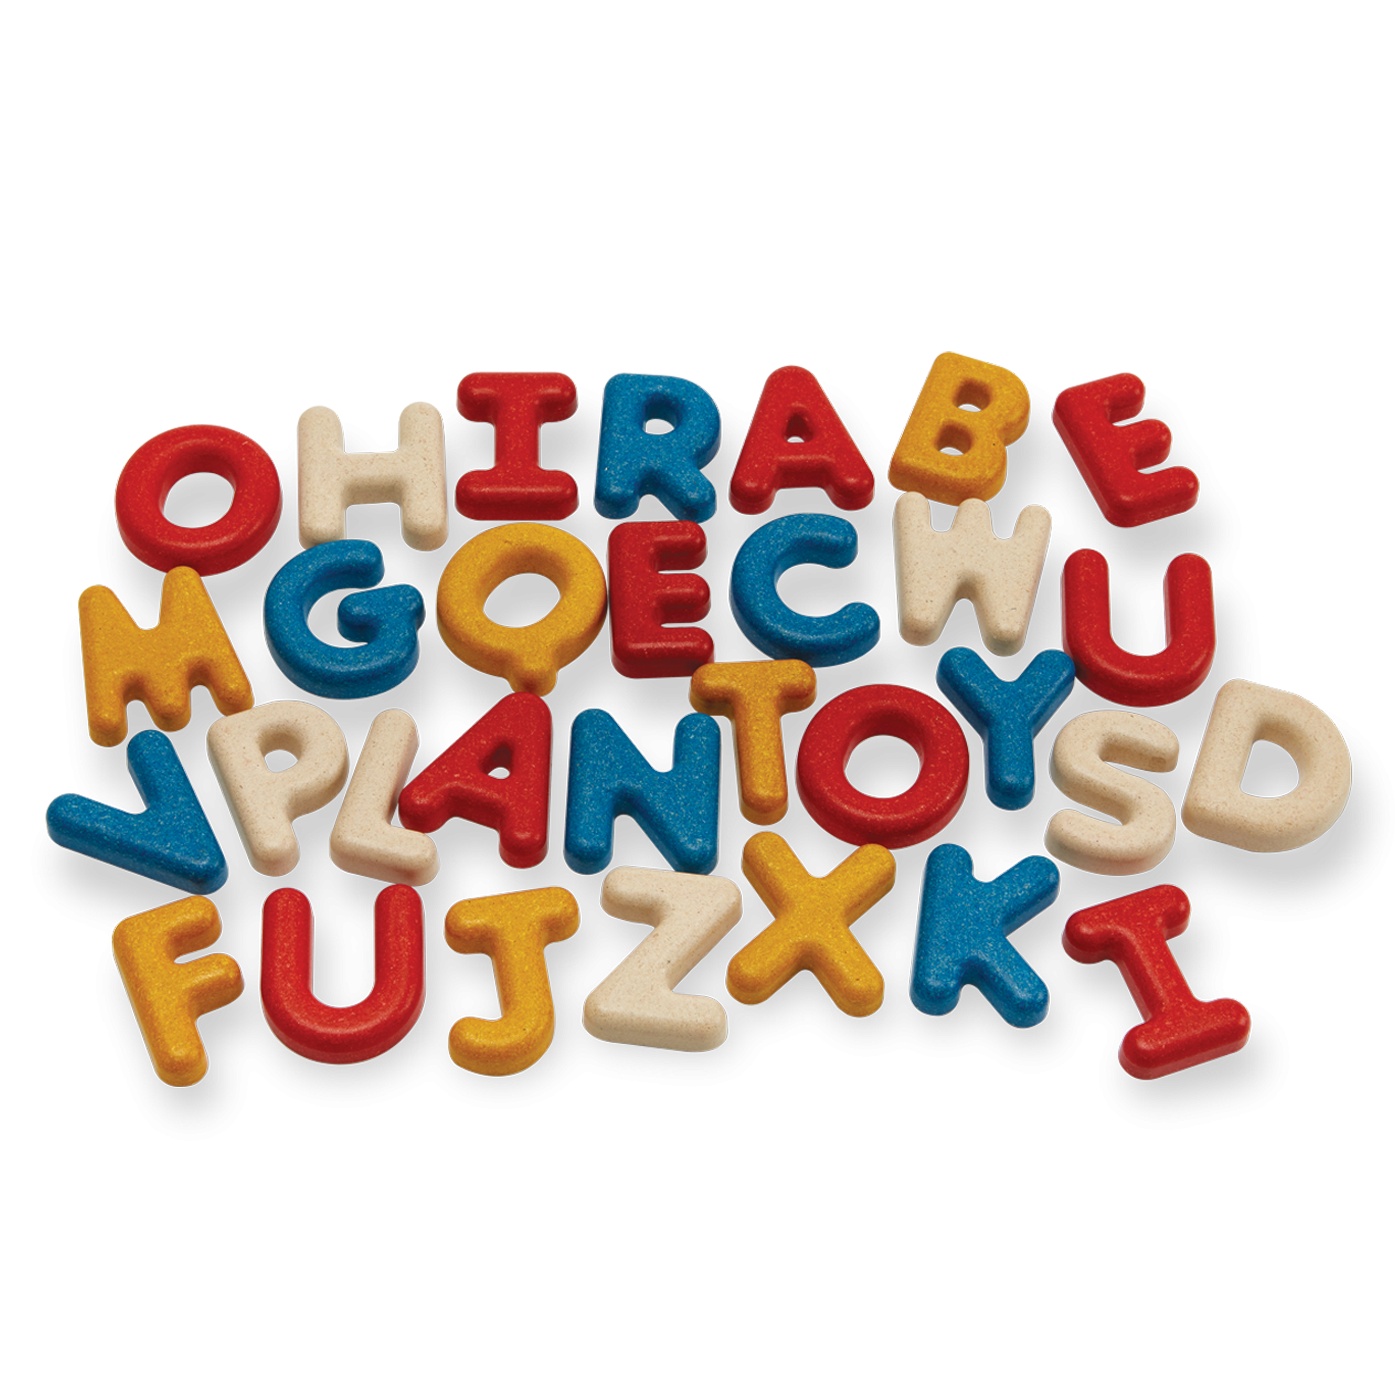 5406_PlanToys_UPPER_CASE_ALPHABET_Learning_and_Education_2yrs_Language_and_Communications_Coordination_Tactile_Concentration_Creative_Logical_Wooden_toys_Education_toys_Safety_Toys_Non-toxic_0.png